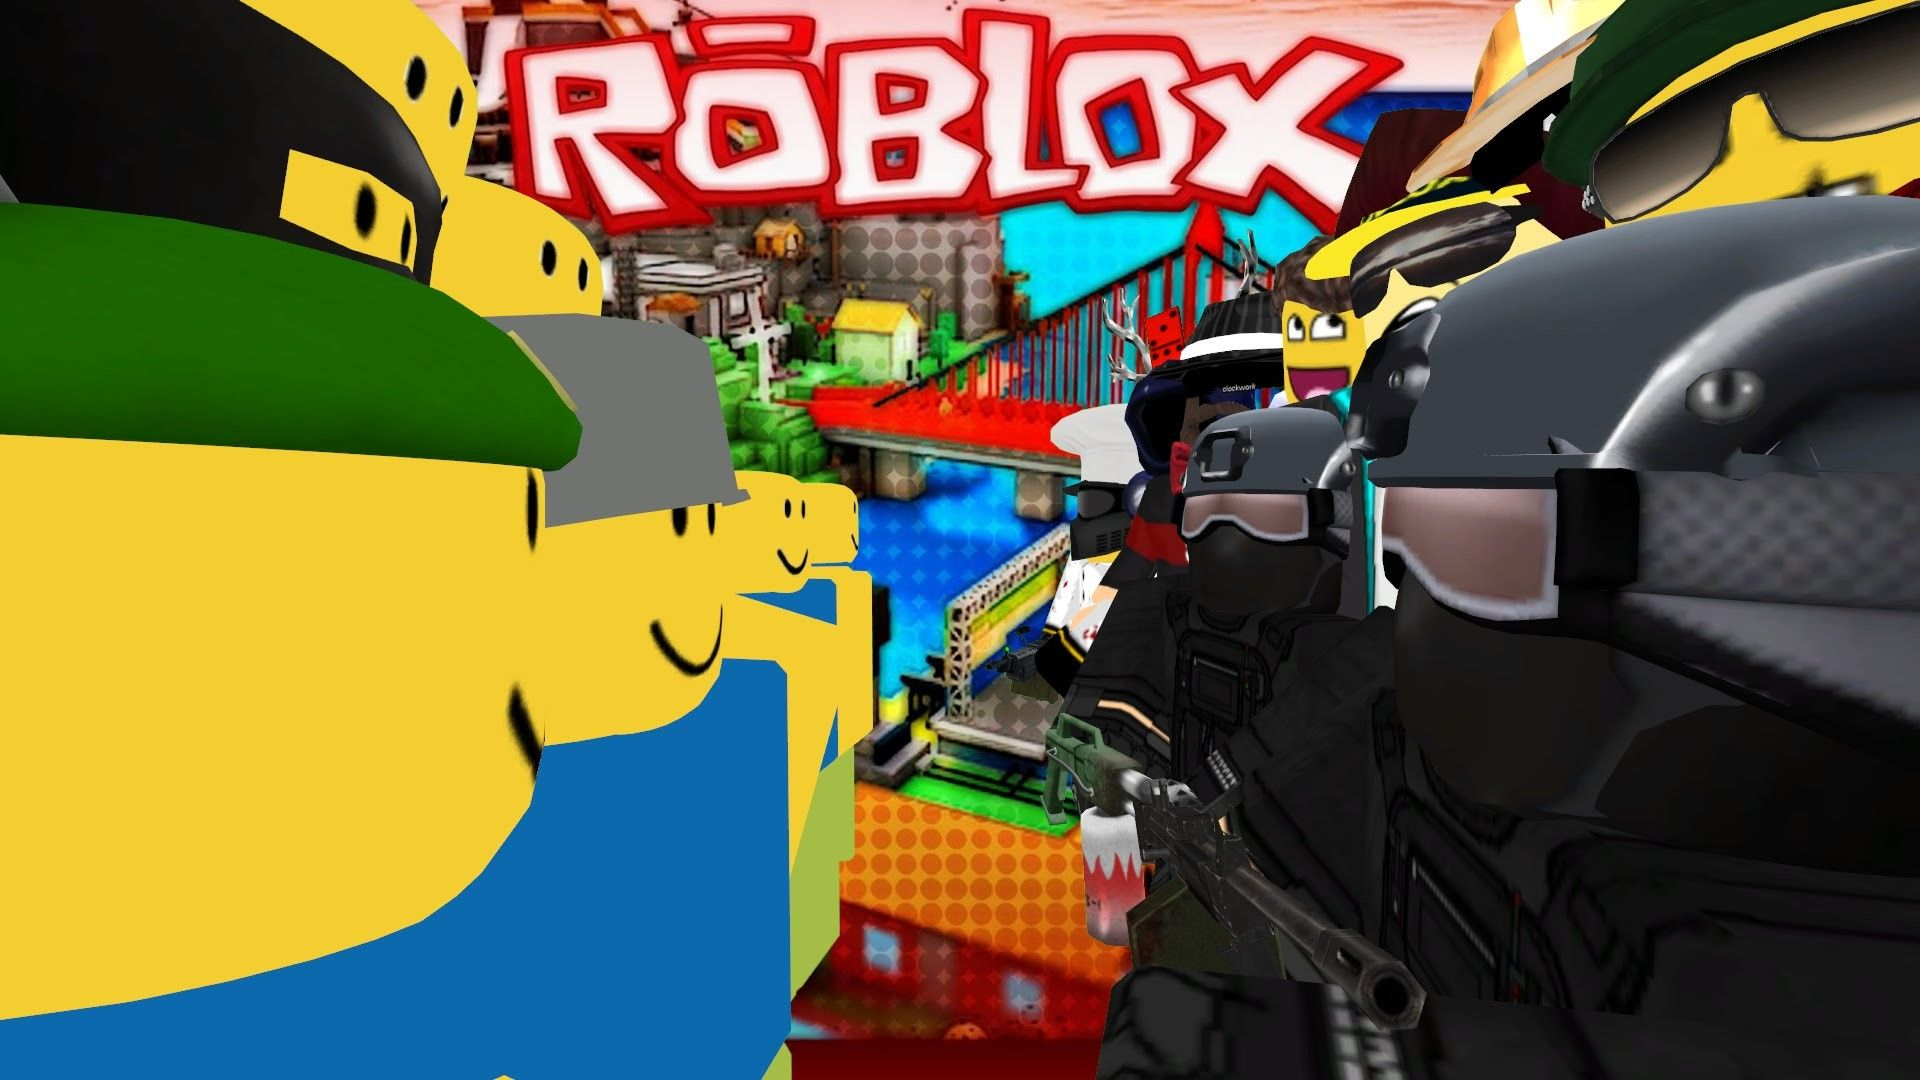 roblox hd wallpaper